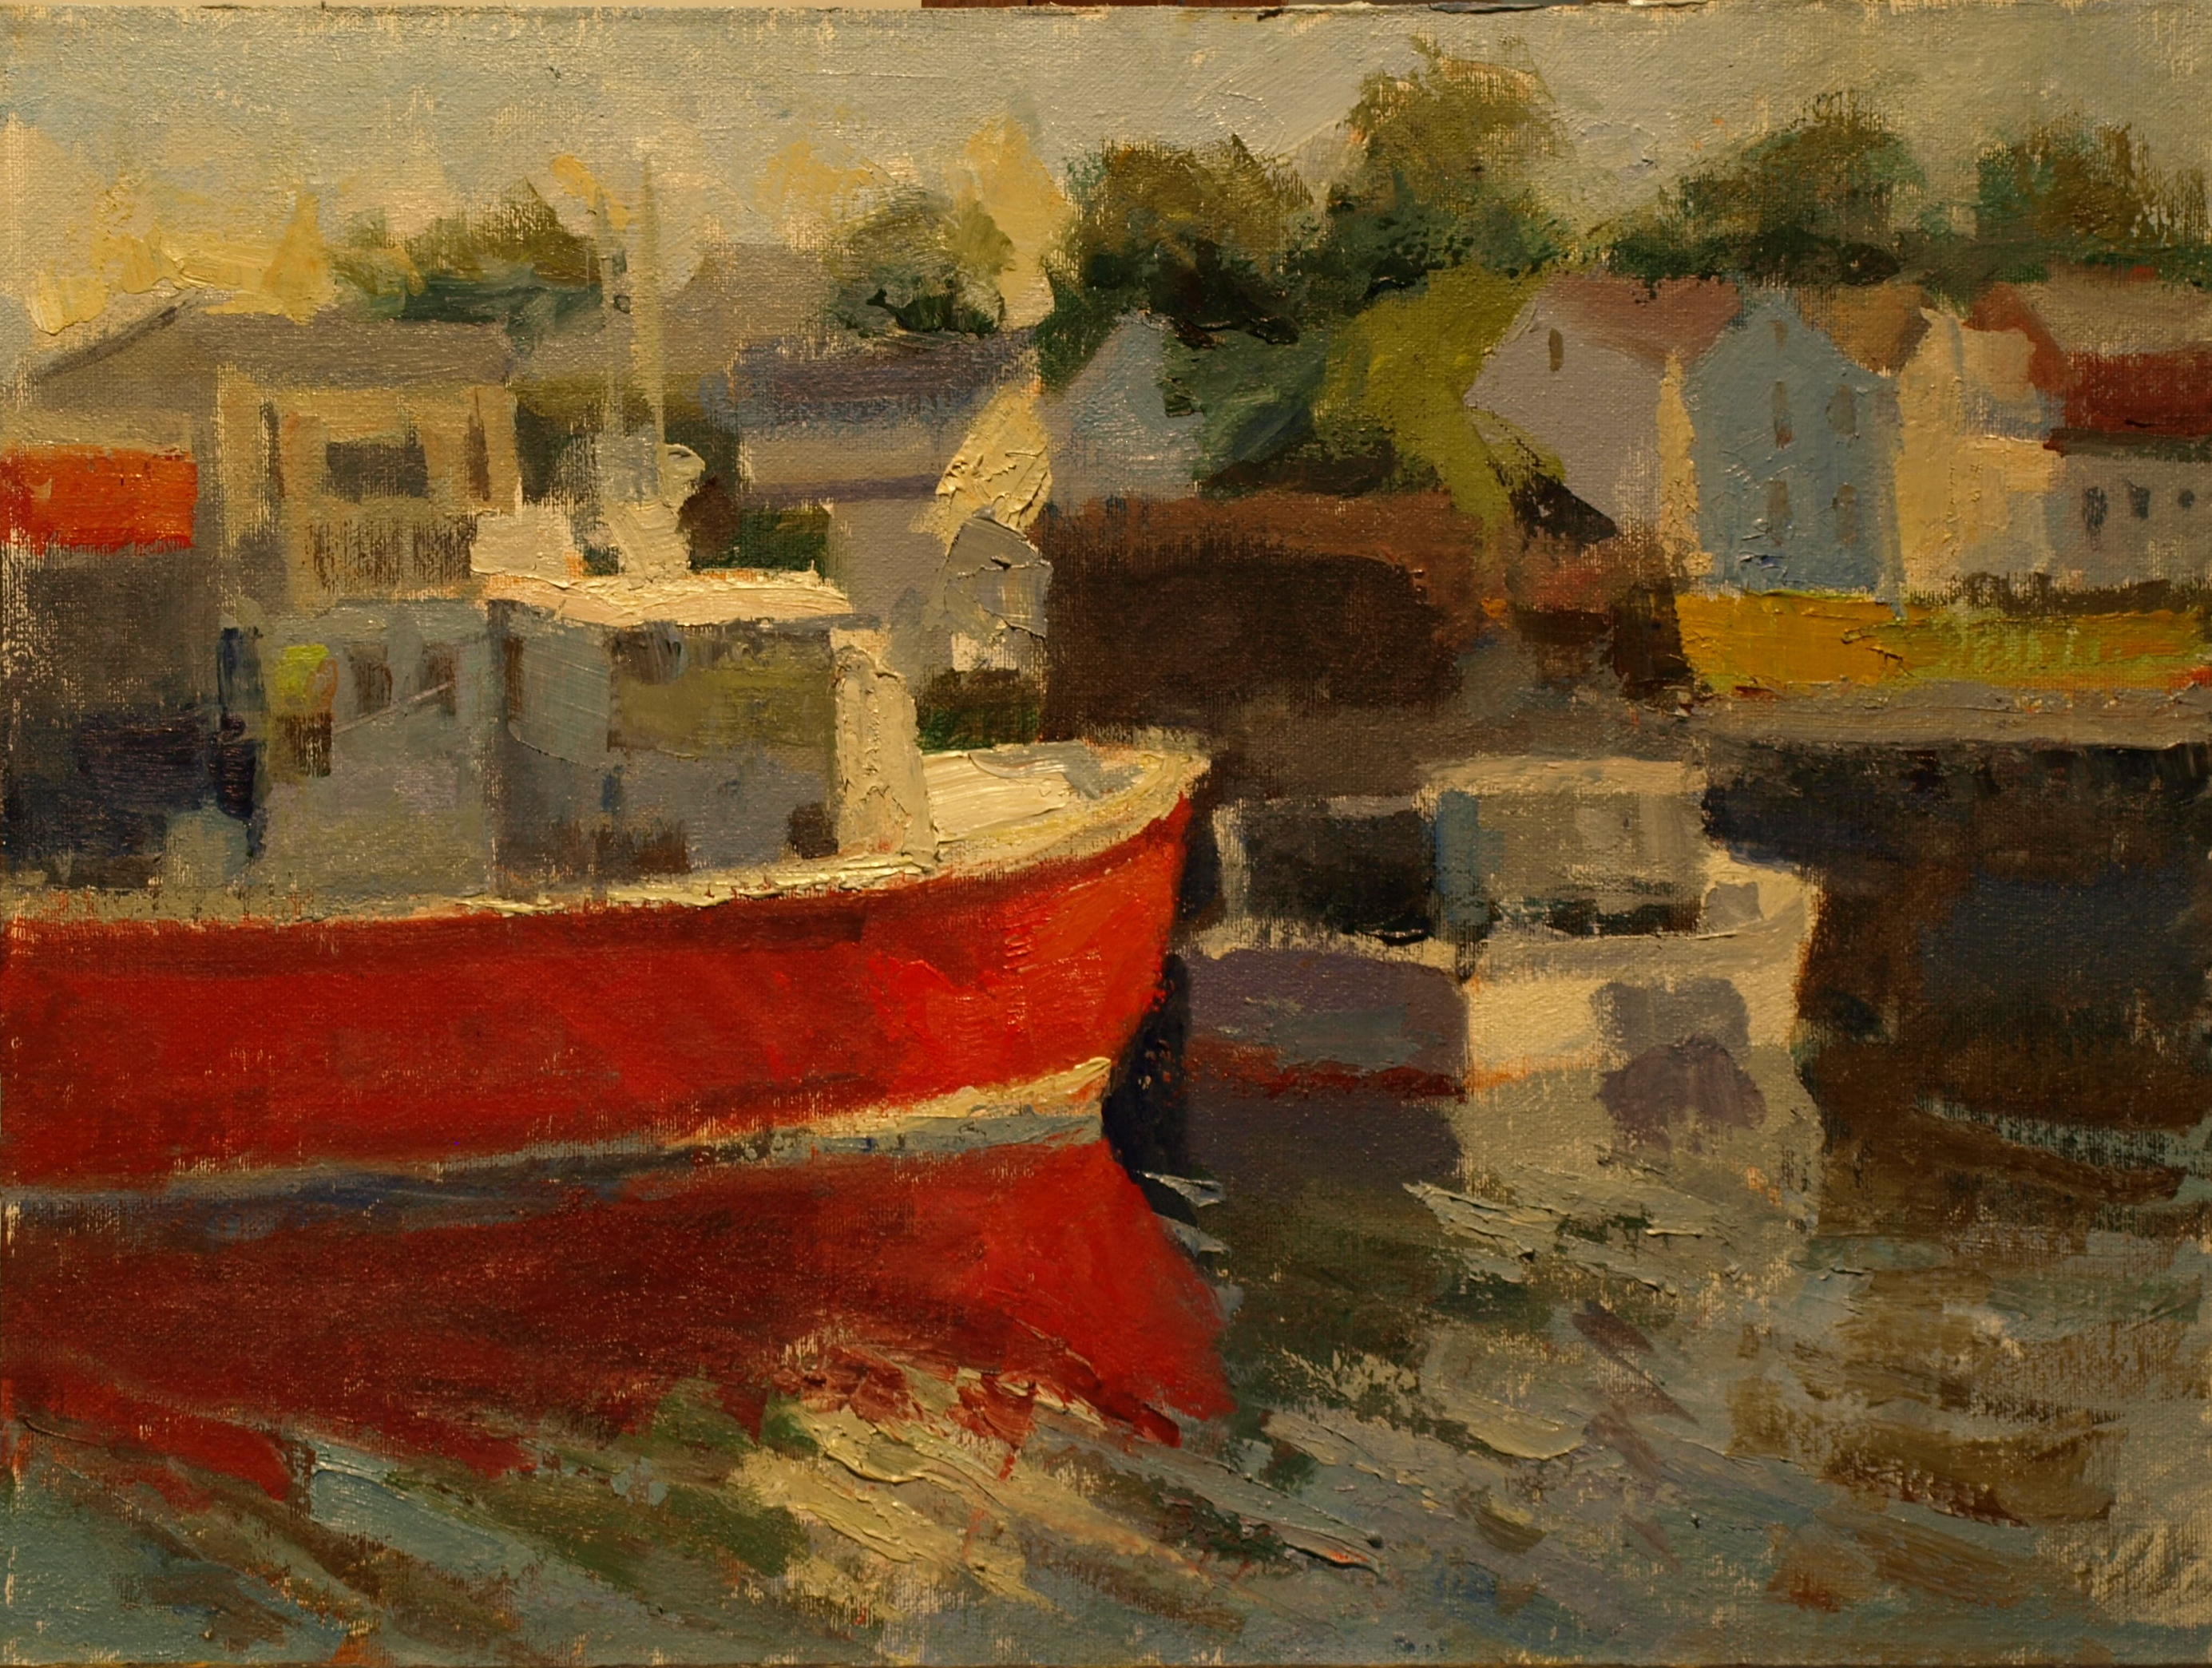 Red Boat, Oil on Canvas on Panel, 12 x 16 Inches, by Susan Grisell, $300